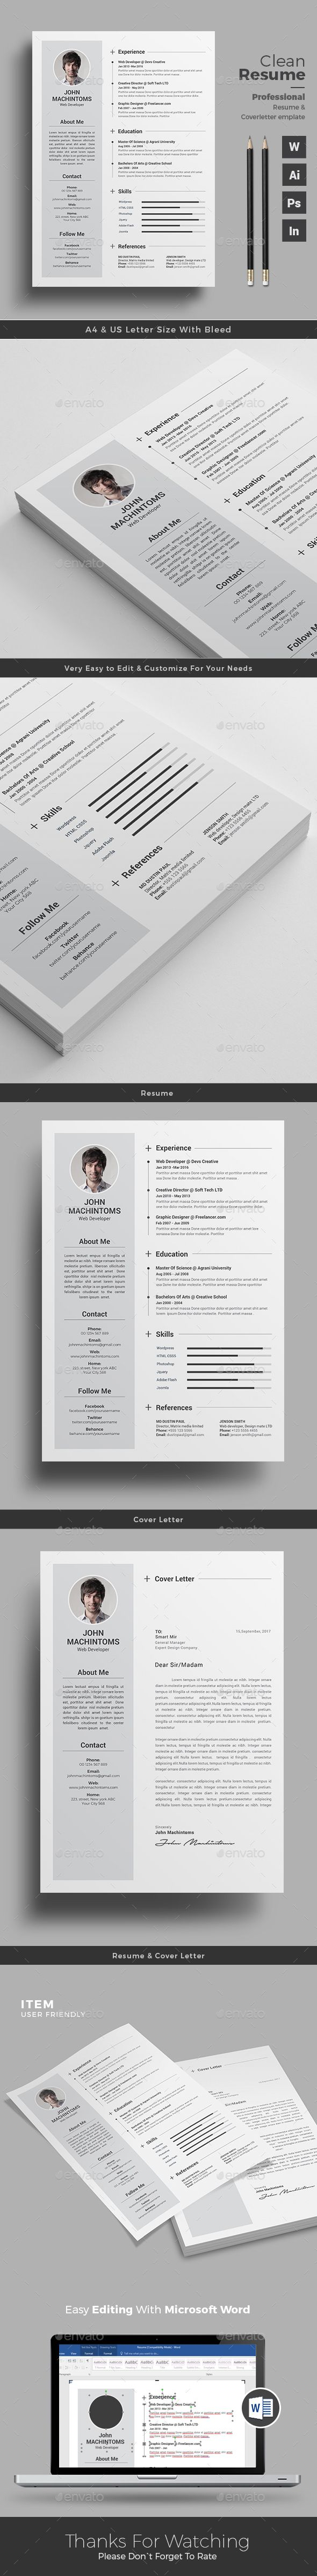 ideas about cover letter cv design clean professional resume word template ms word psd ai indd a4